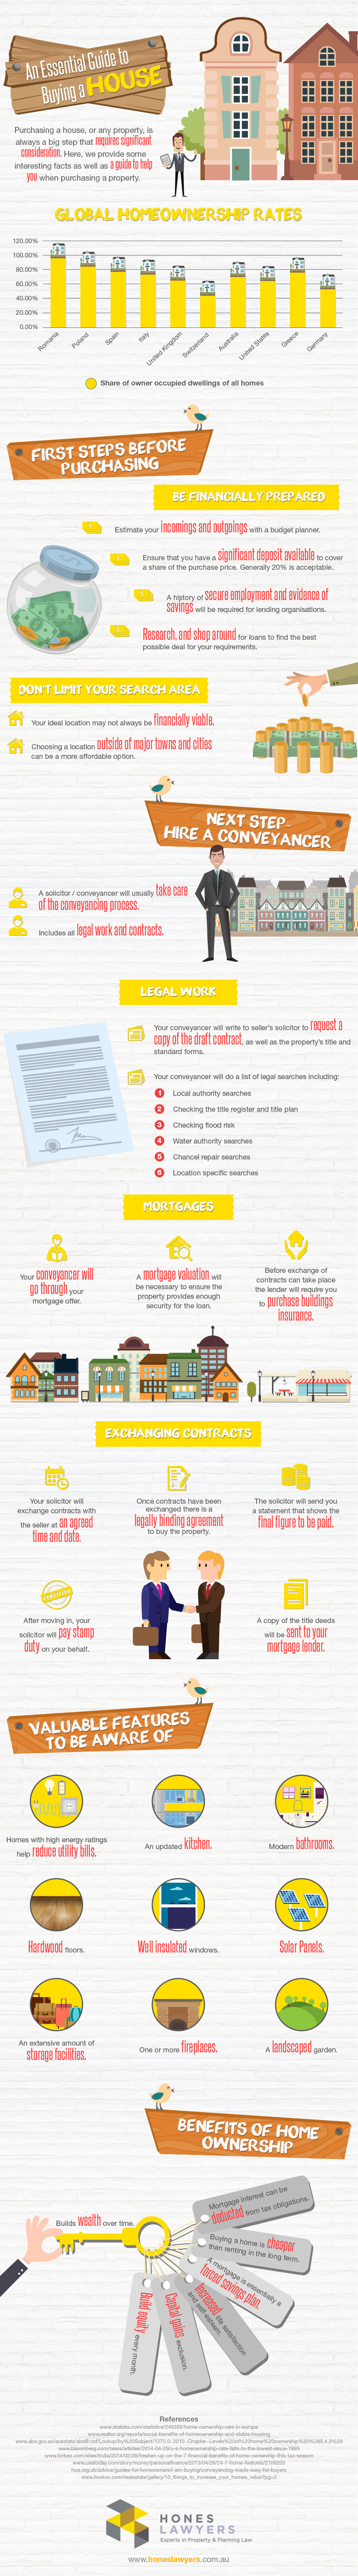 An-Essential-Guide-to-Buying-a-House-Infographic